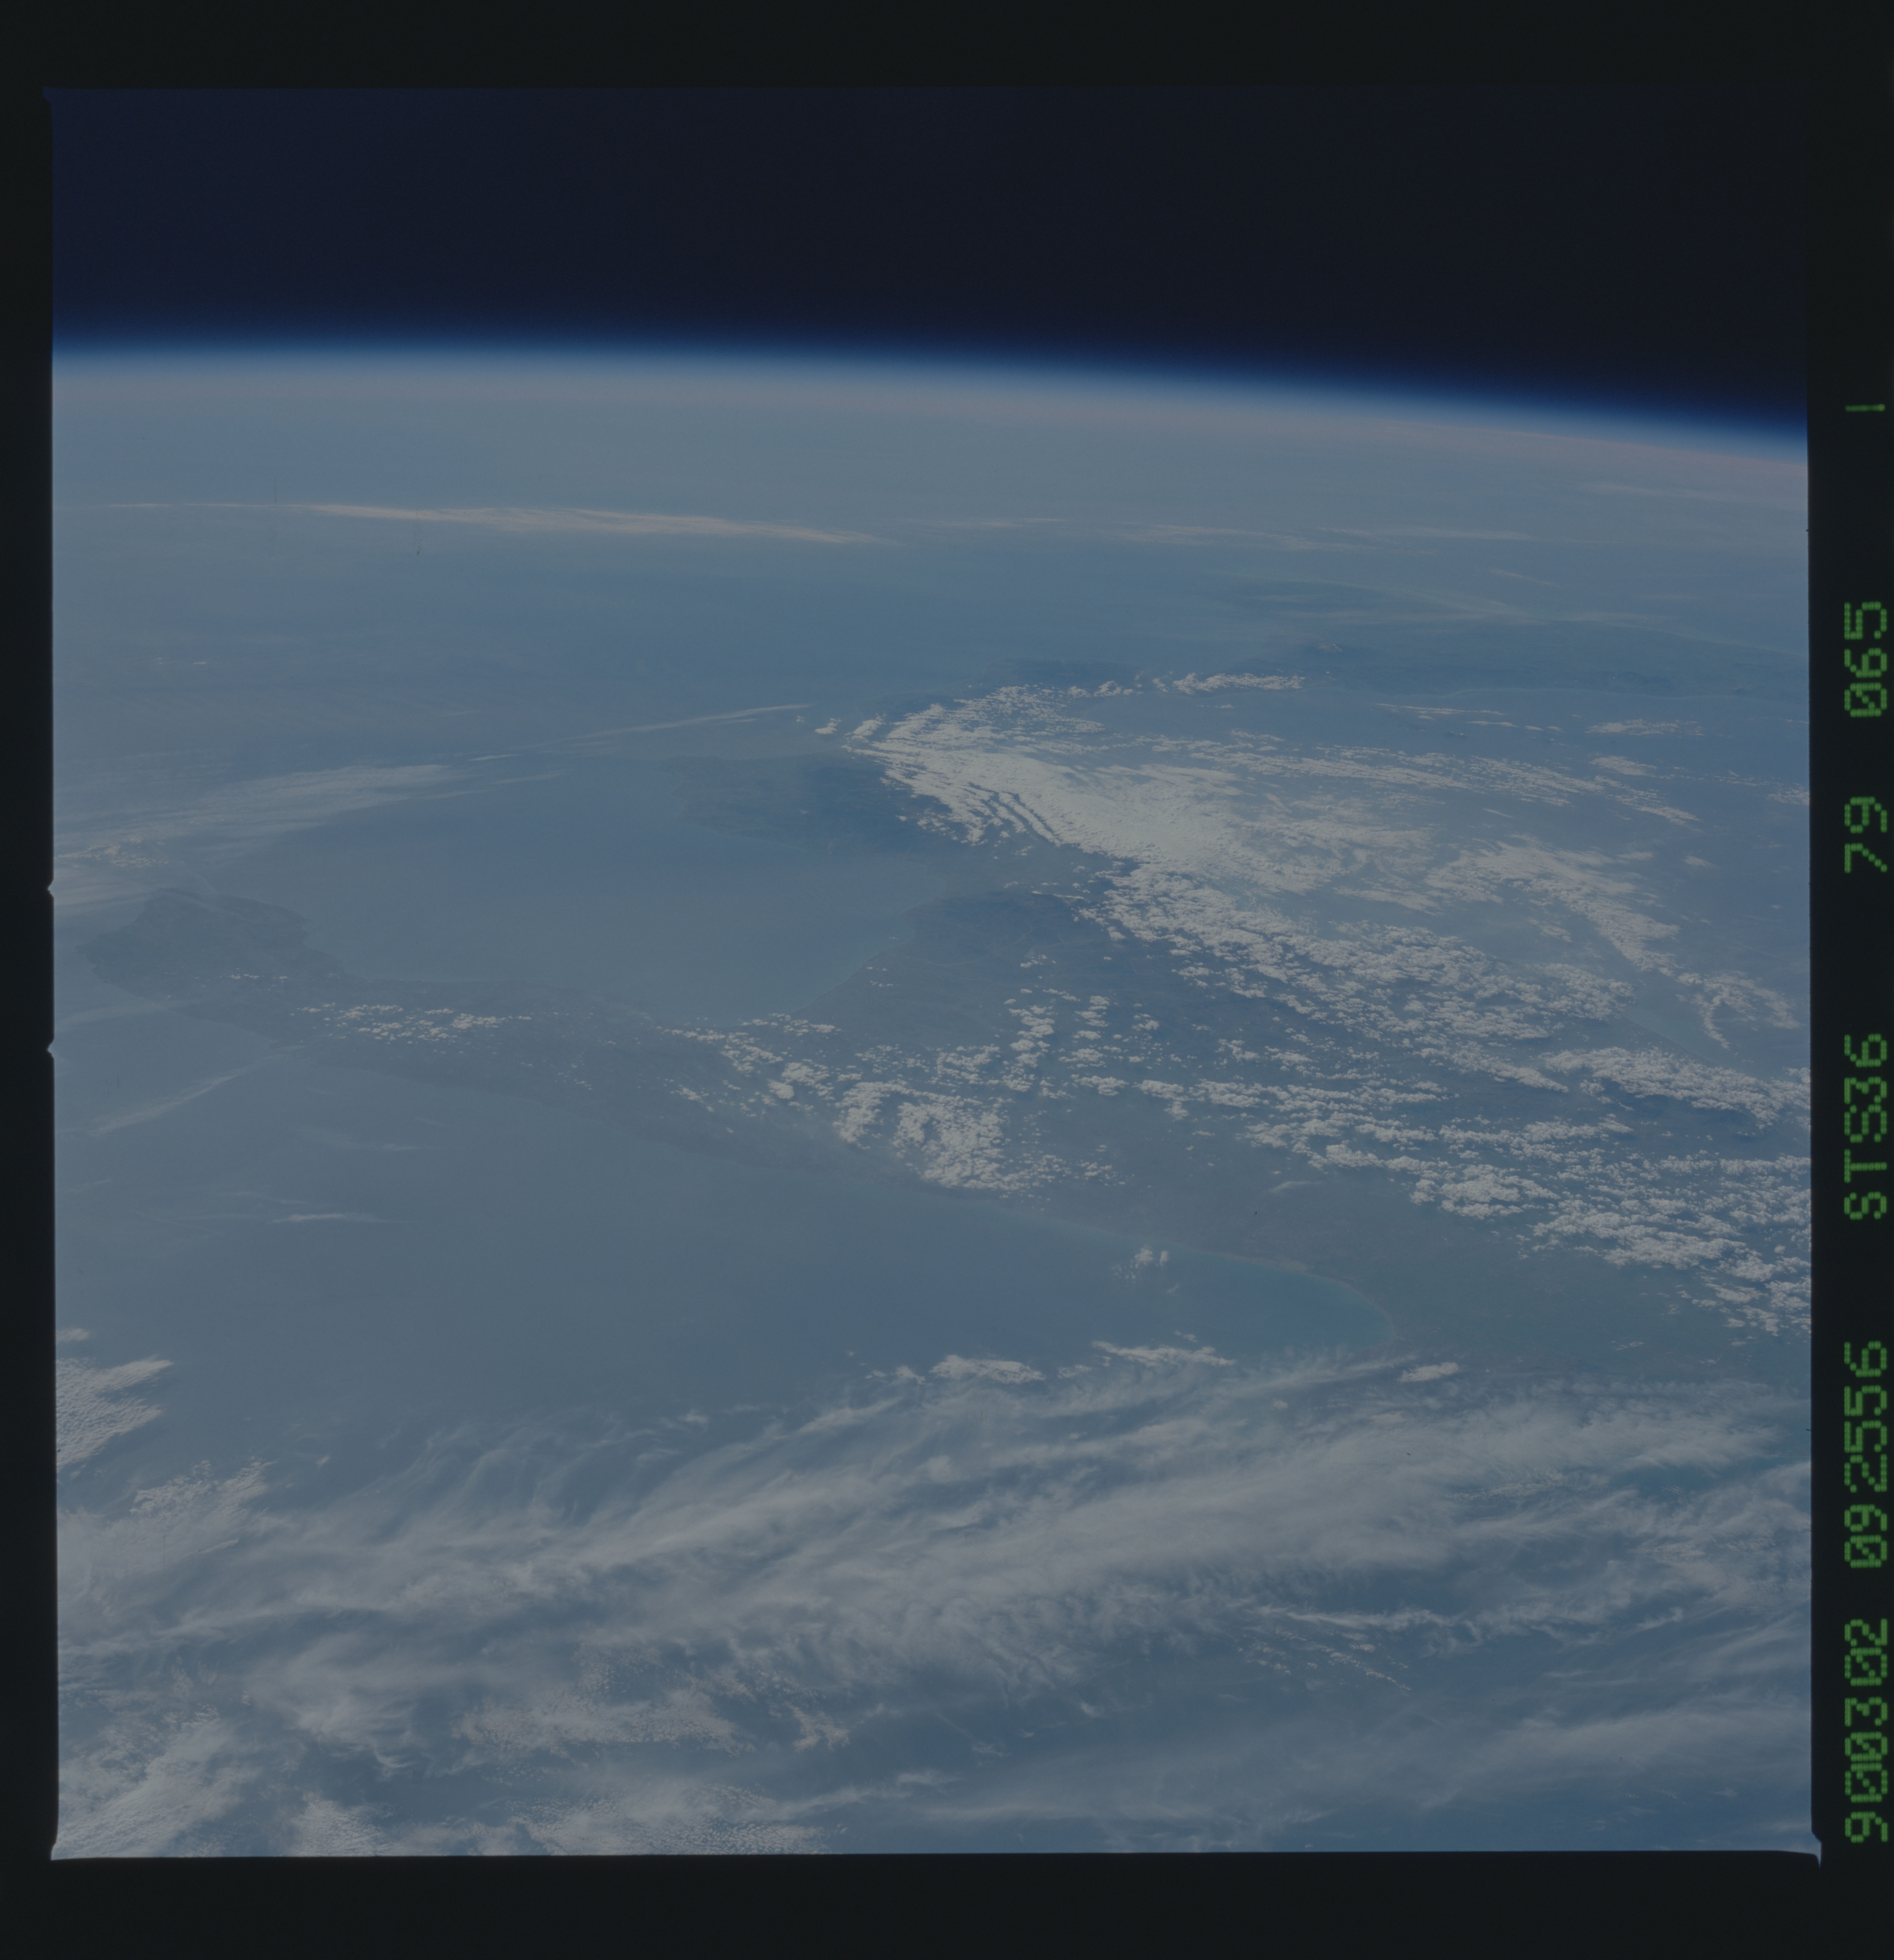 S36-79-065 - STS-036 - STS-36 earth observations